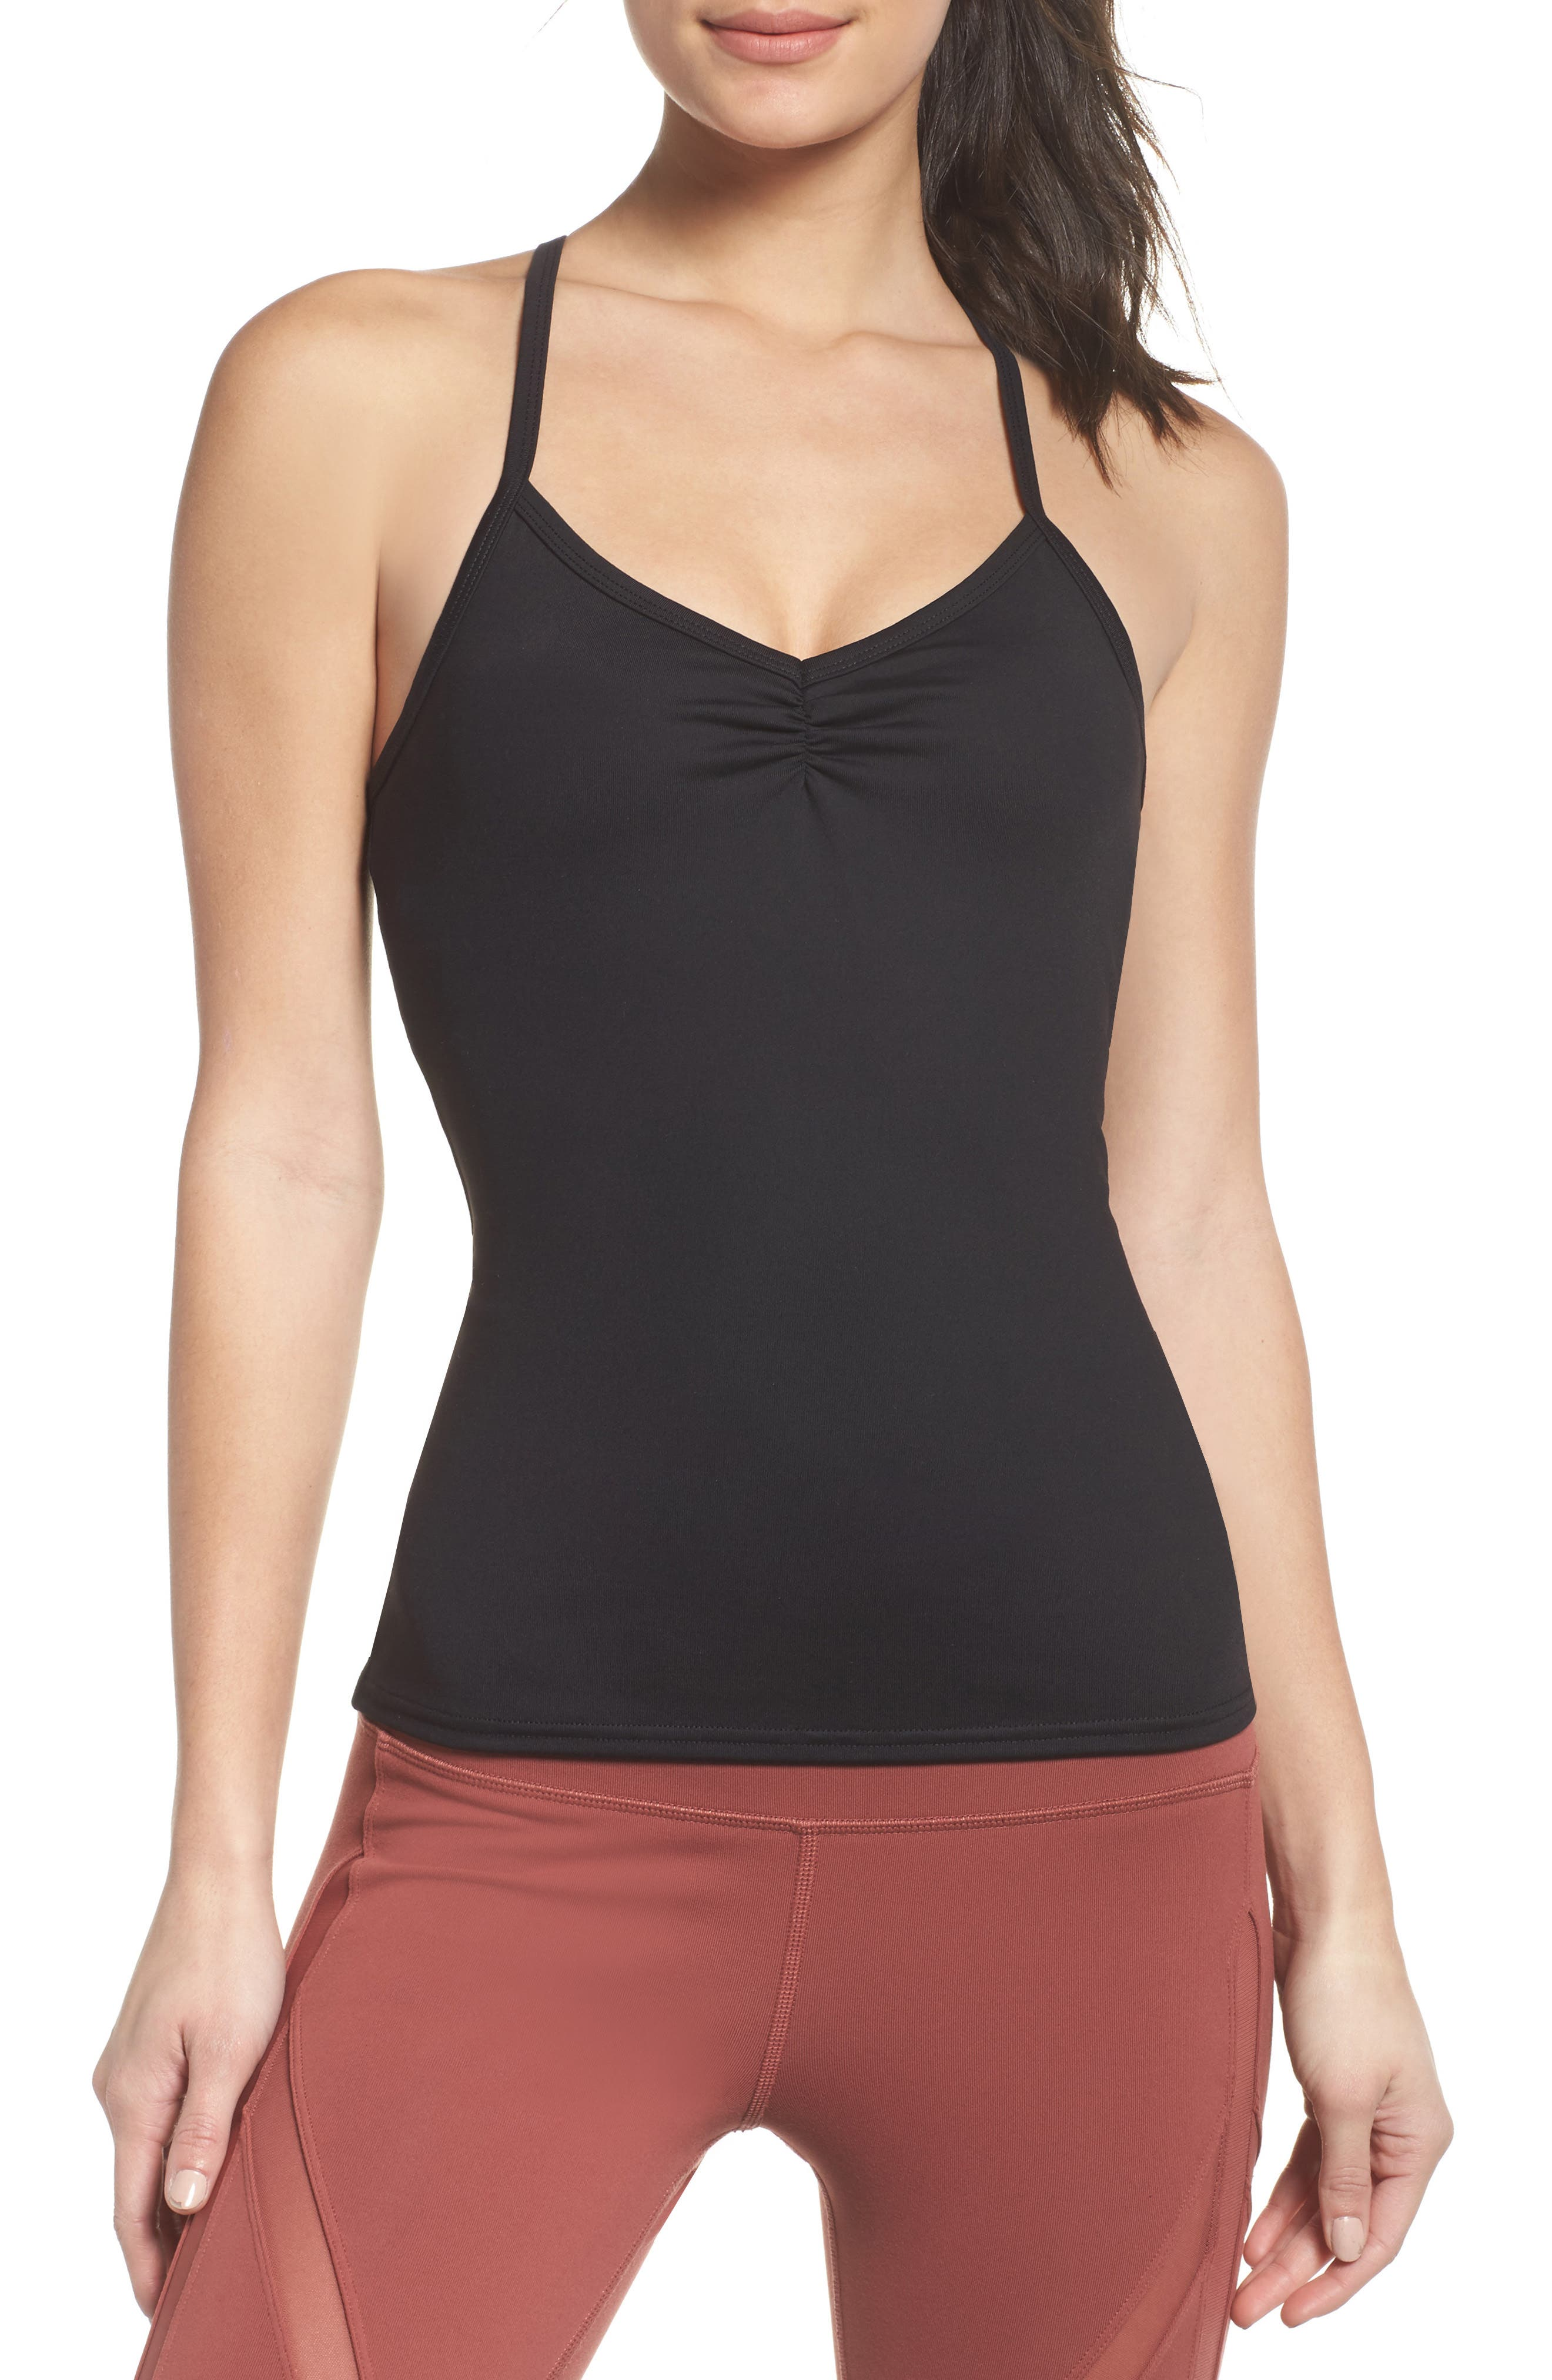 Sunny Strappy Built-In Bra Tank,                             Main thumbnail 1, color,                             001